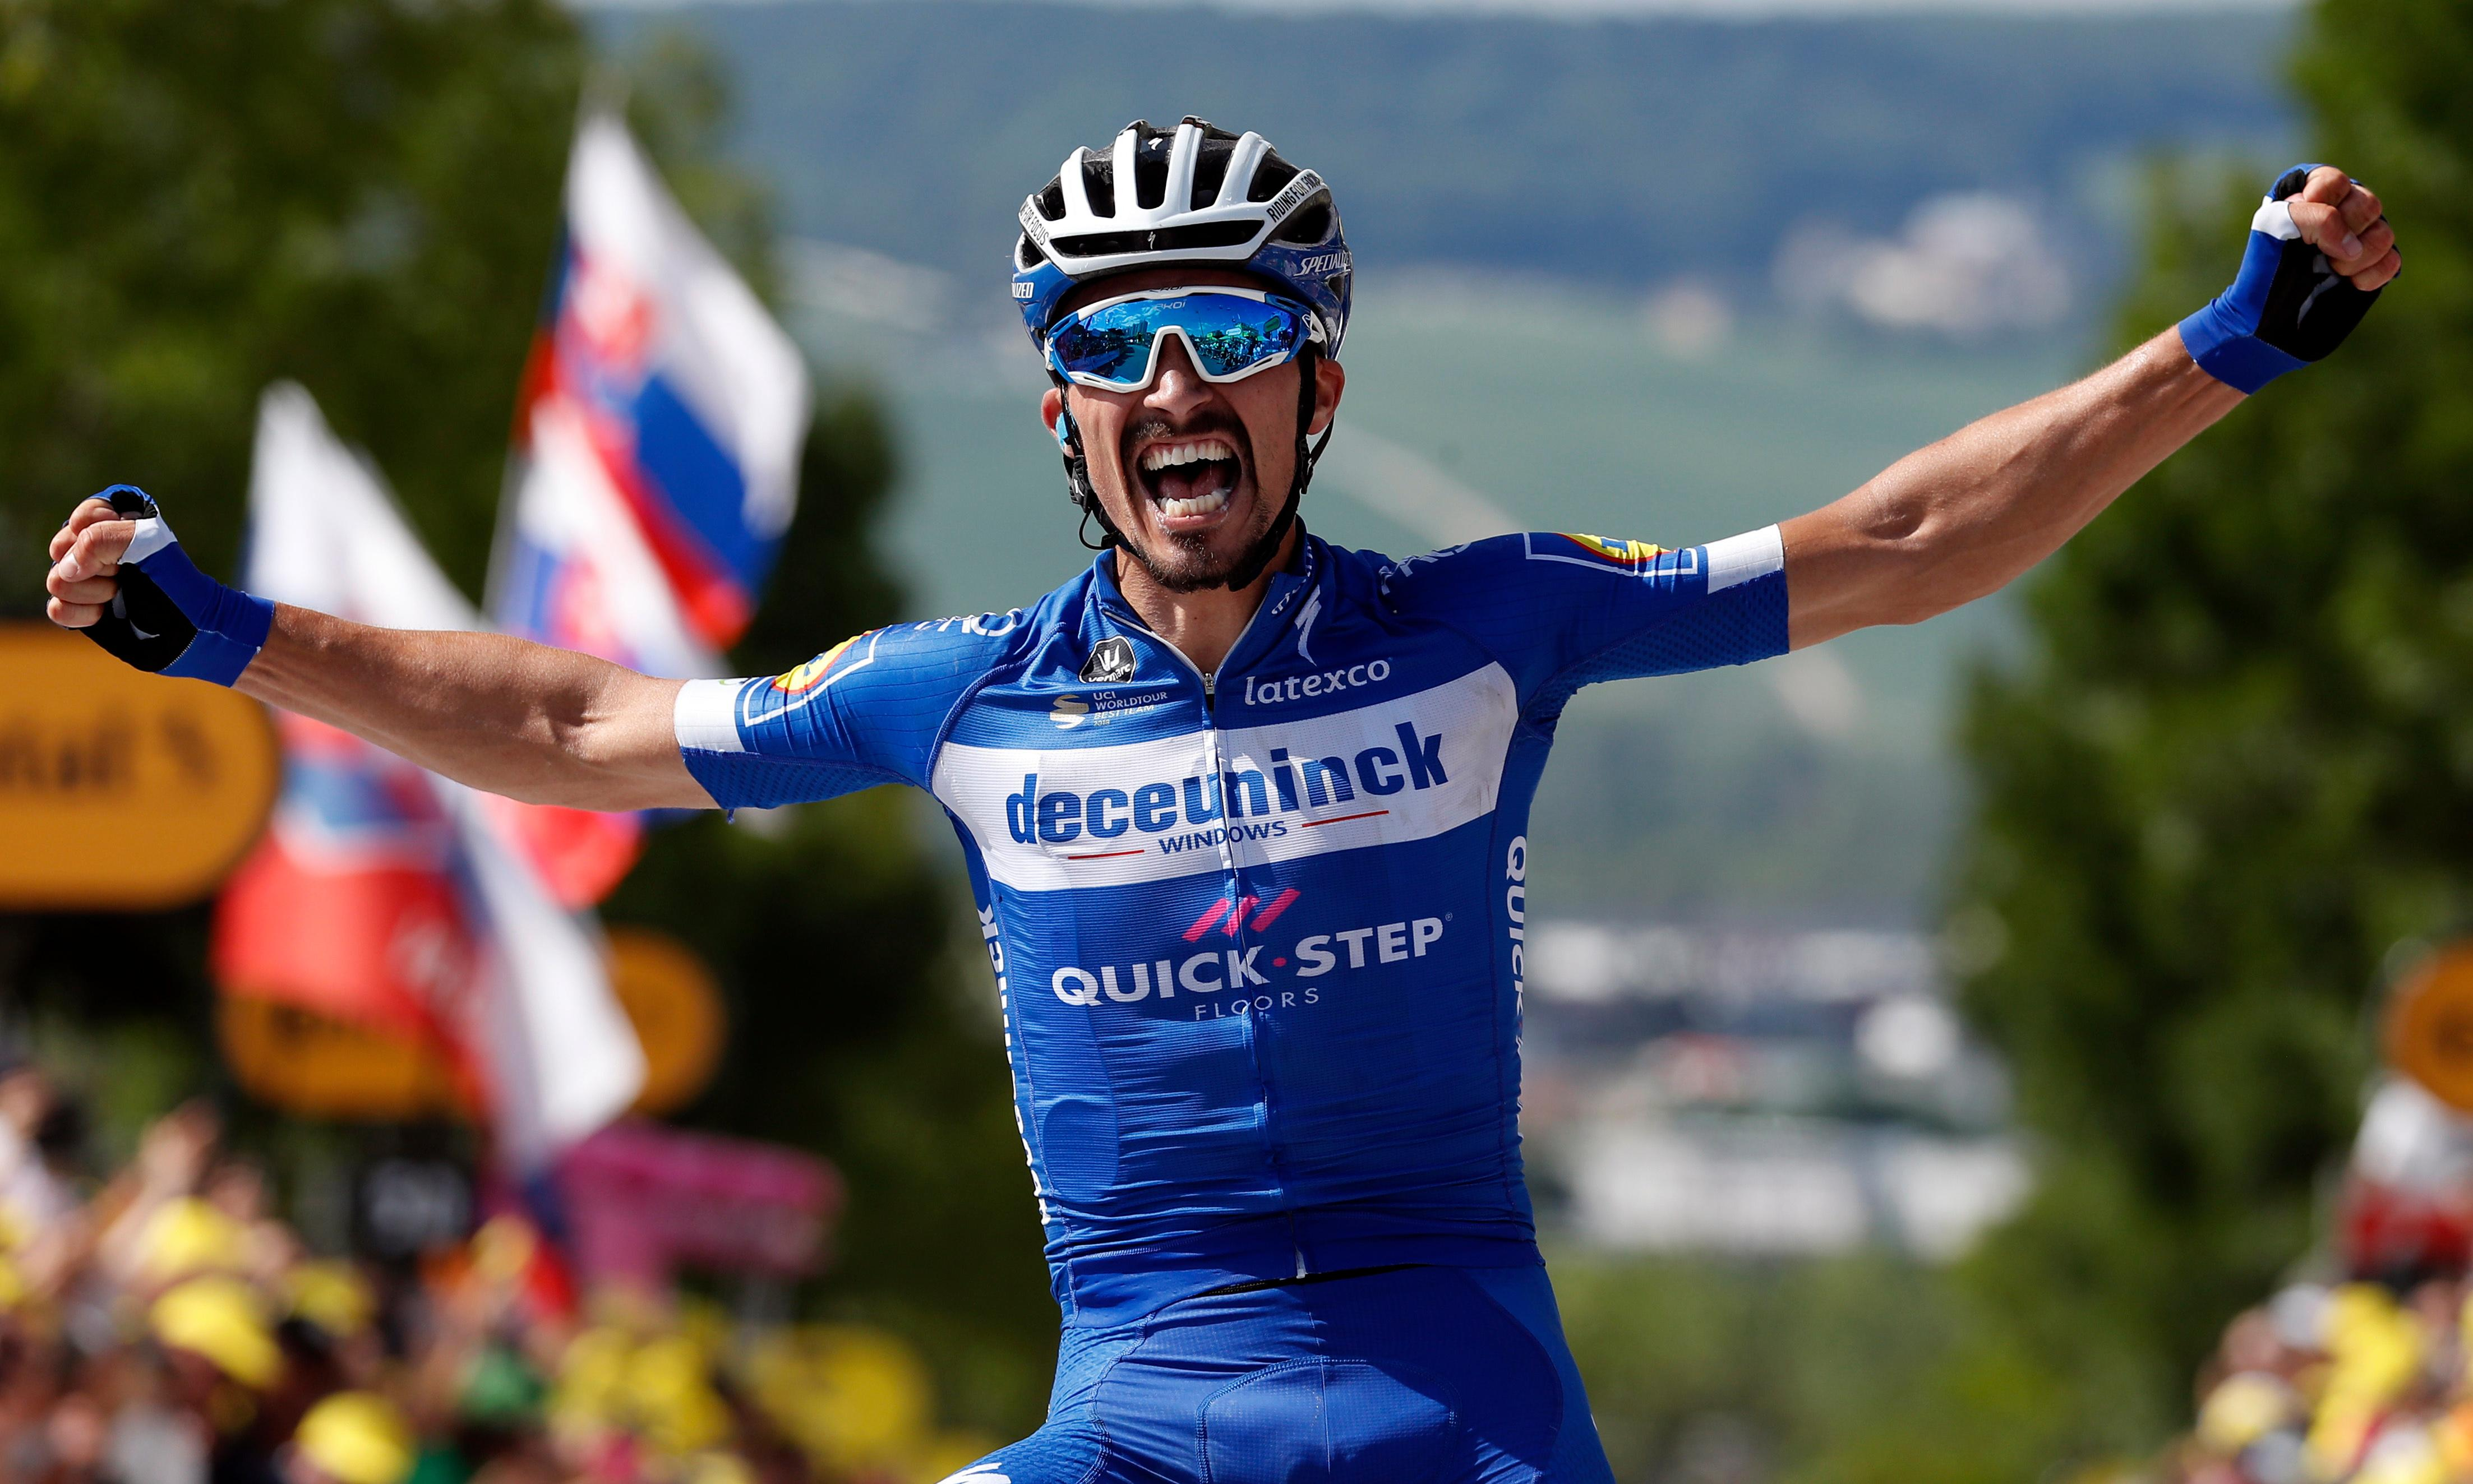 Tour de France: Julian Alaphilippe wins stage three to take yellow jersey